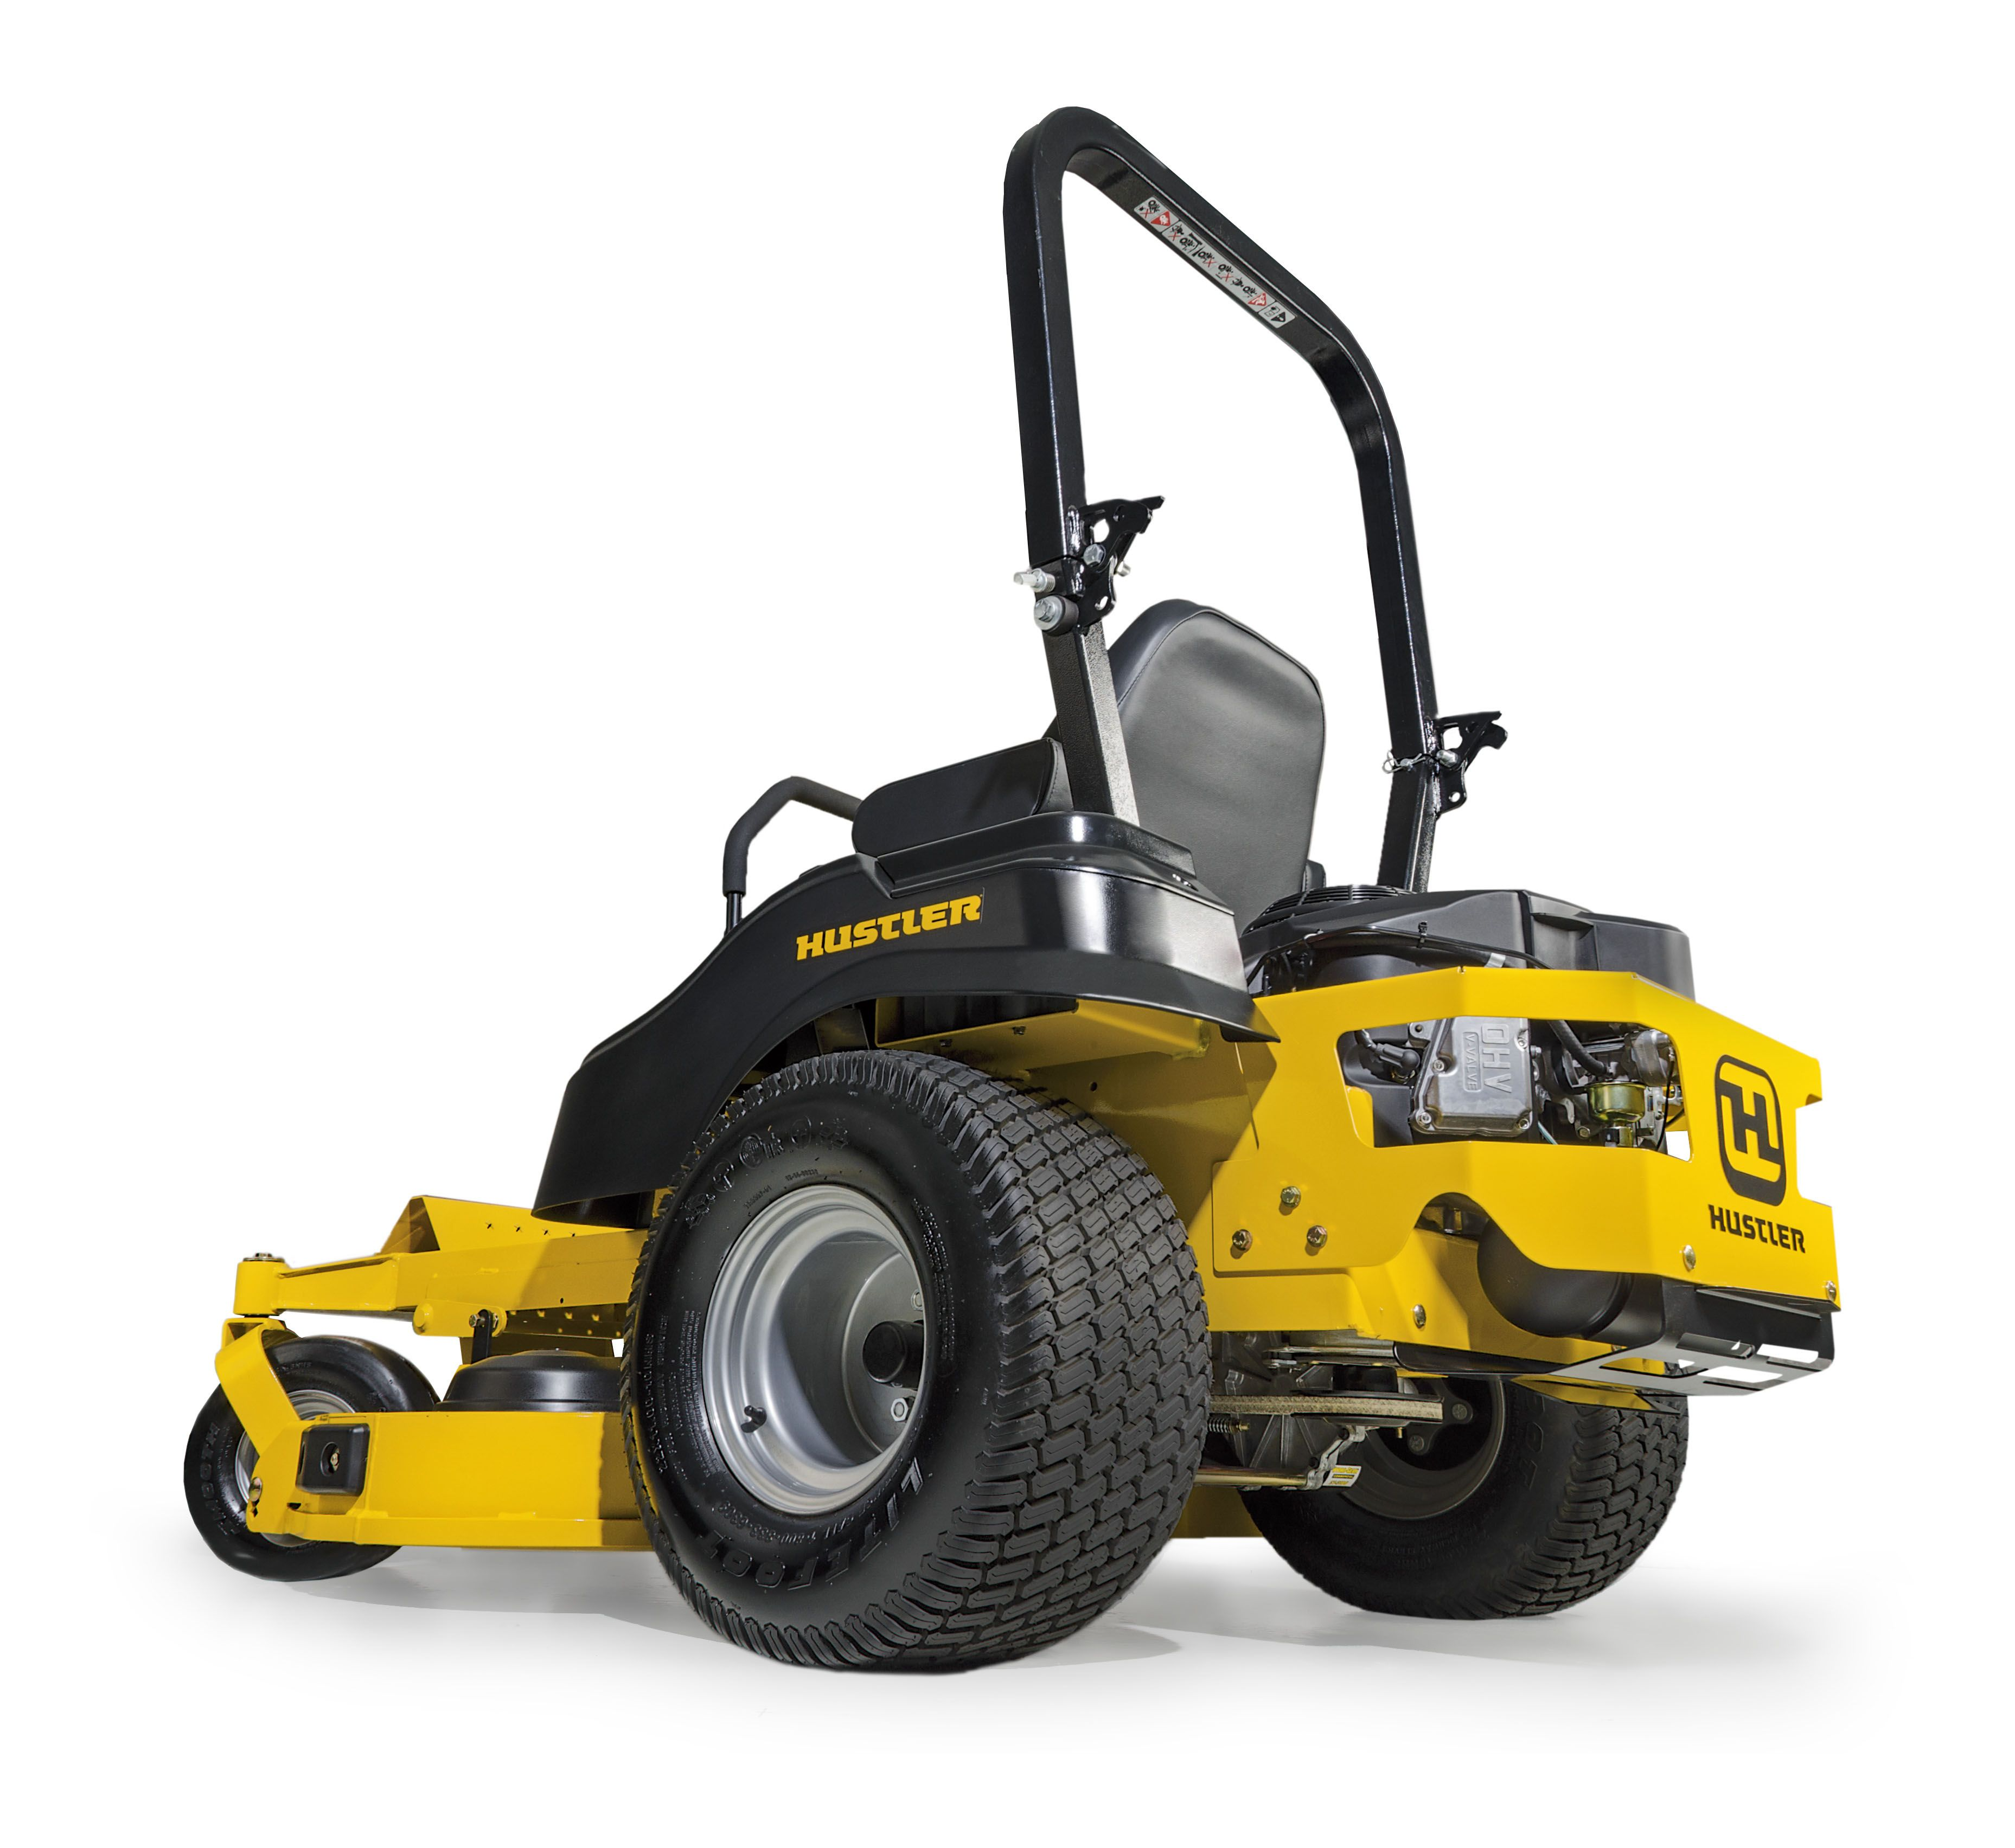 Sorry, that Hustler excel mowers agree, the